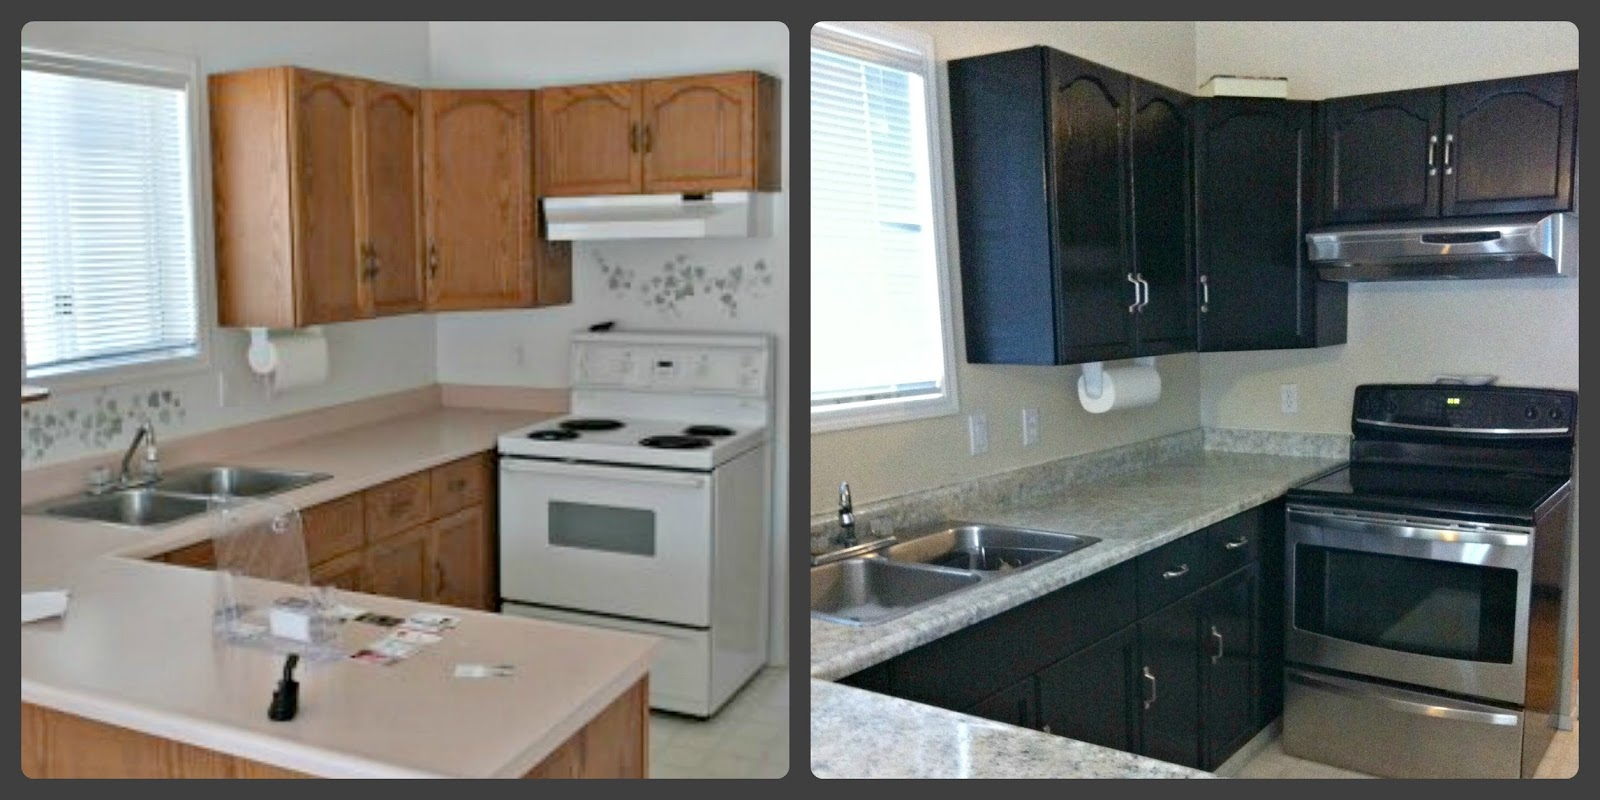 Countertop Paint Before And After : ... and Caffeinated: Paint Your Countertop: Giani Granite Countertop Paint